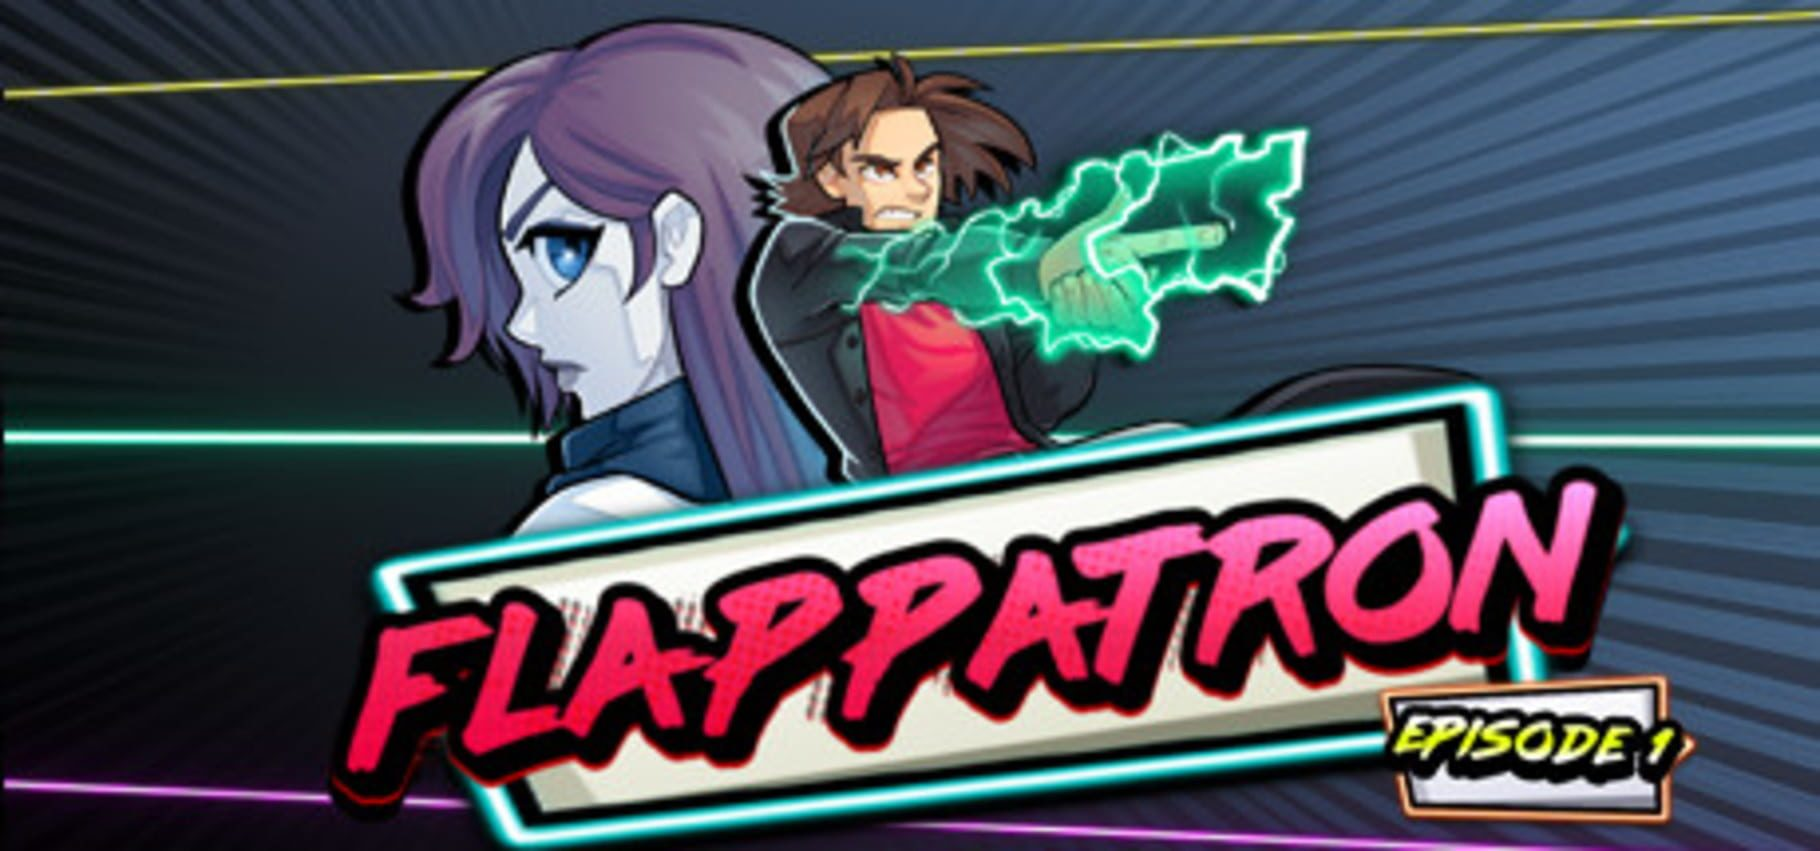 buy Flappatron Episode 1 cd key for all platform